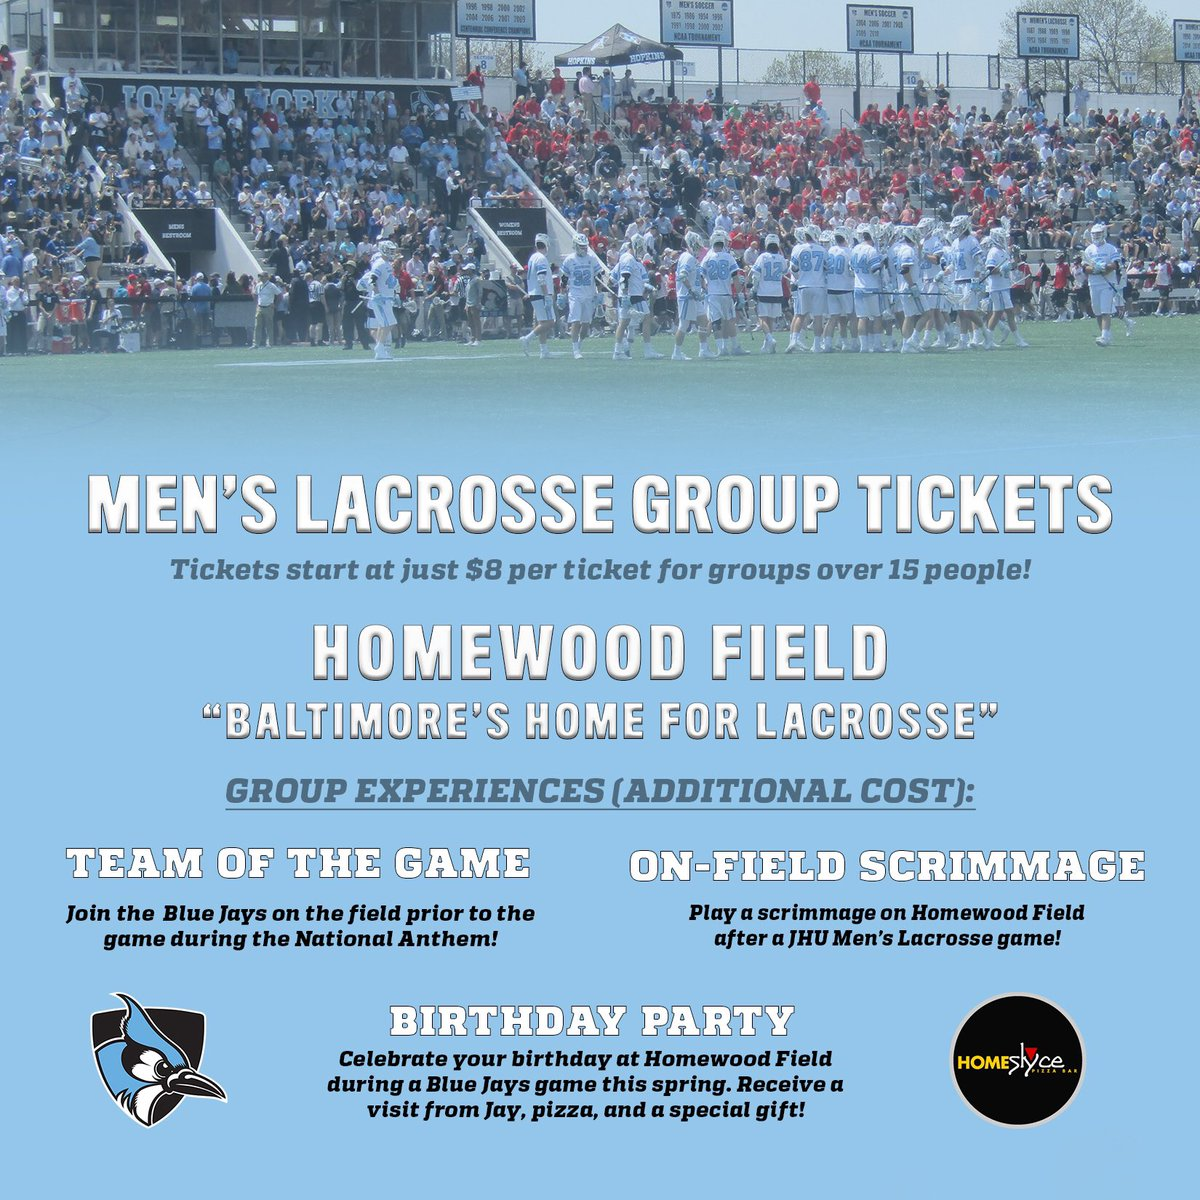 93e4ac56aebb7 Coming to historic Homewood field this spring   Bring all your friends and   PackTheNest! Group ticket experiences available for the 2019 season ...